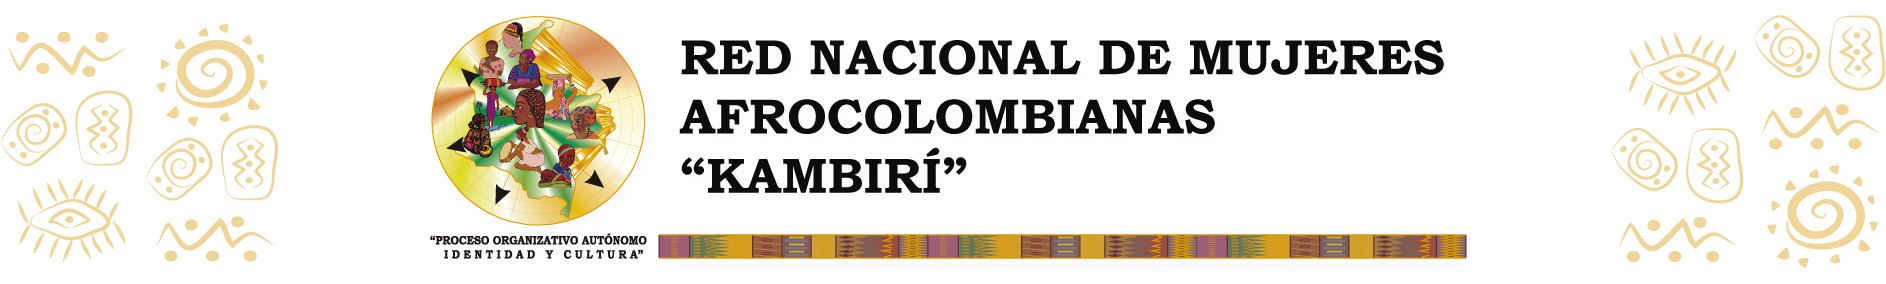 Red de Mujeres Afrocolombianas Kambirí